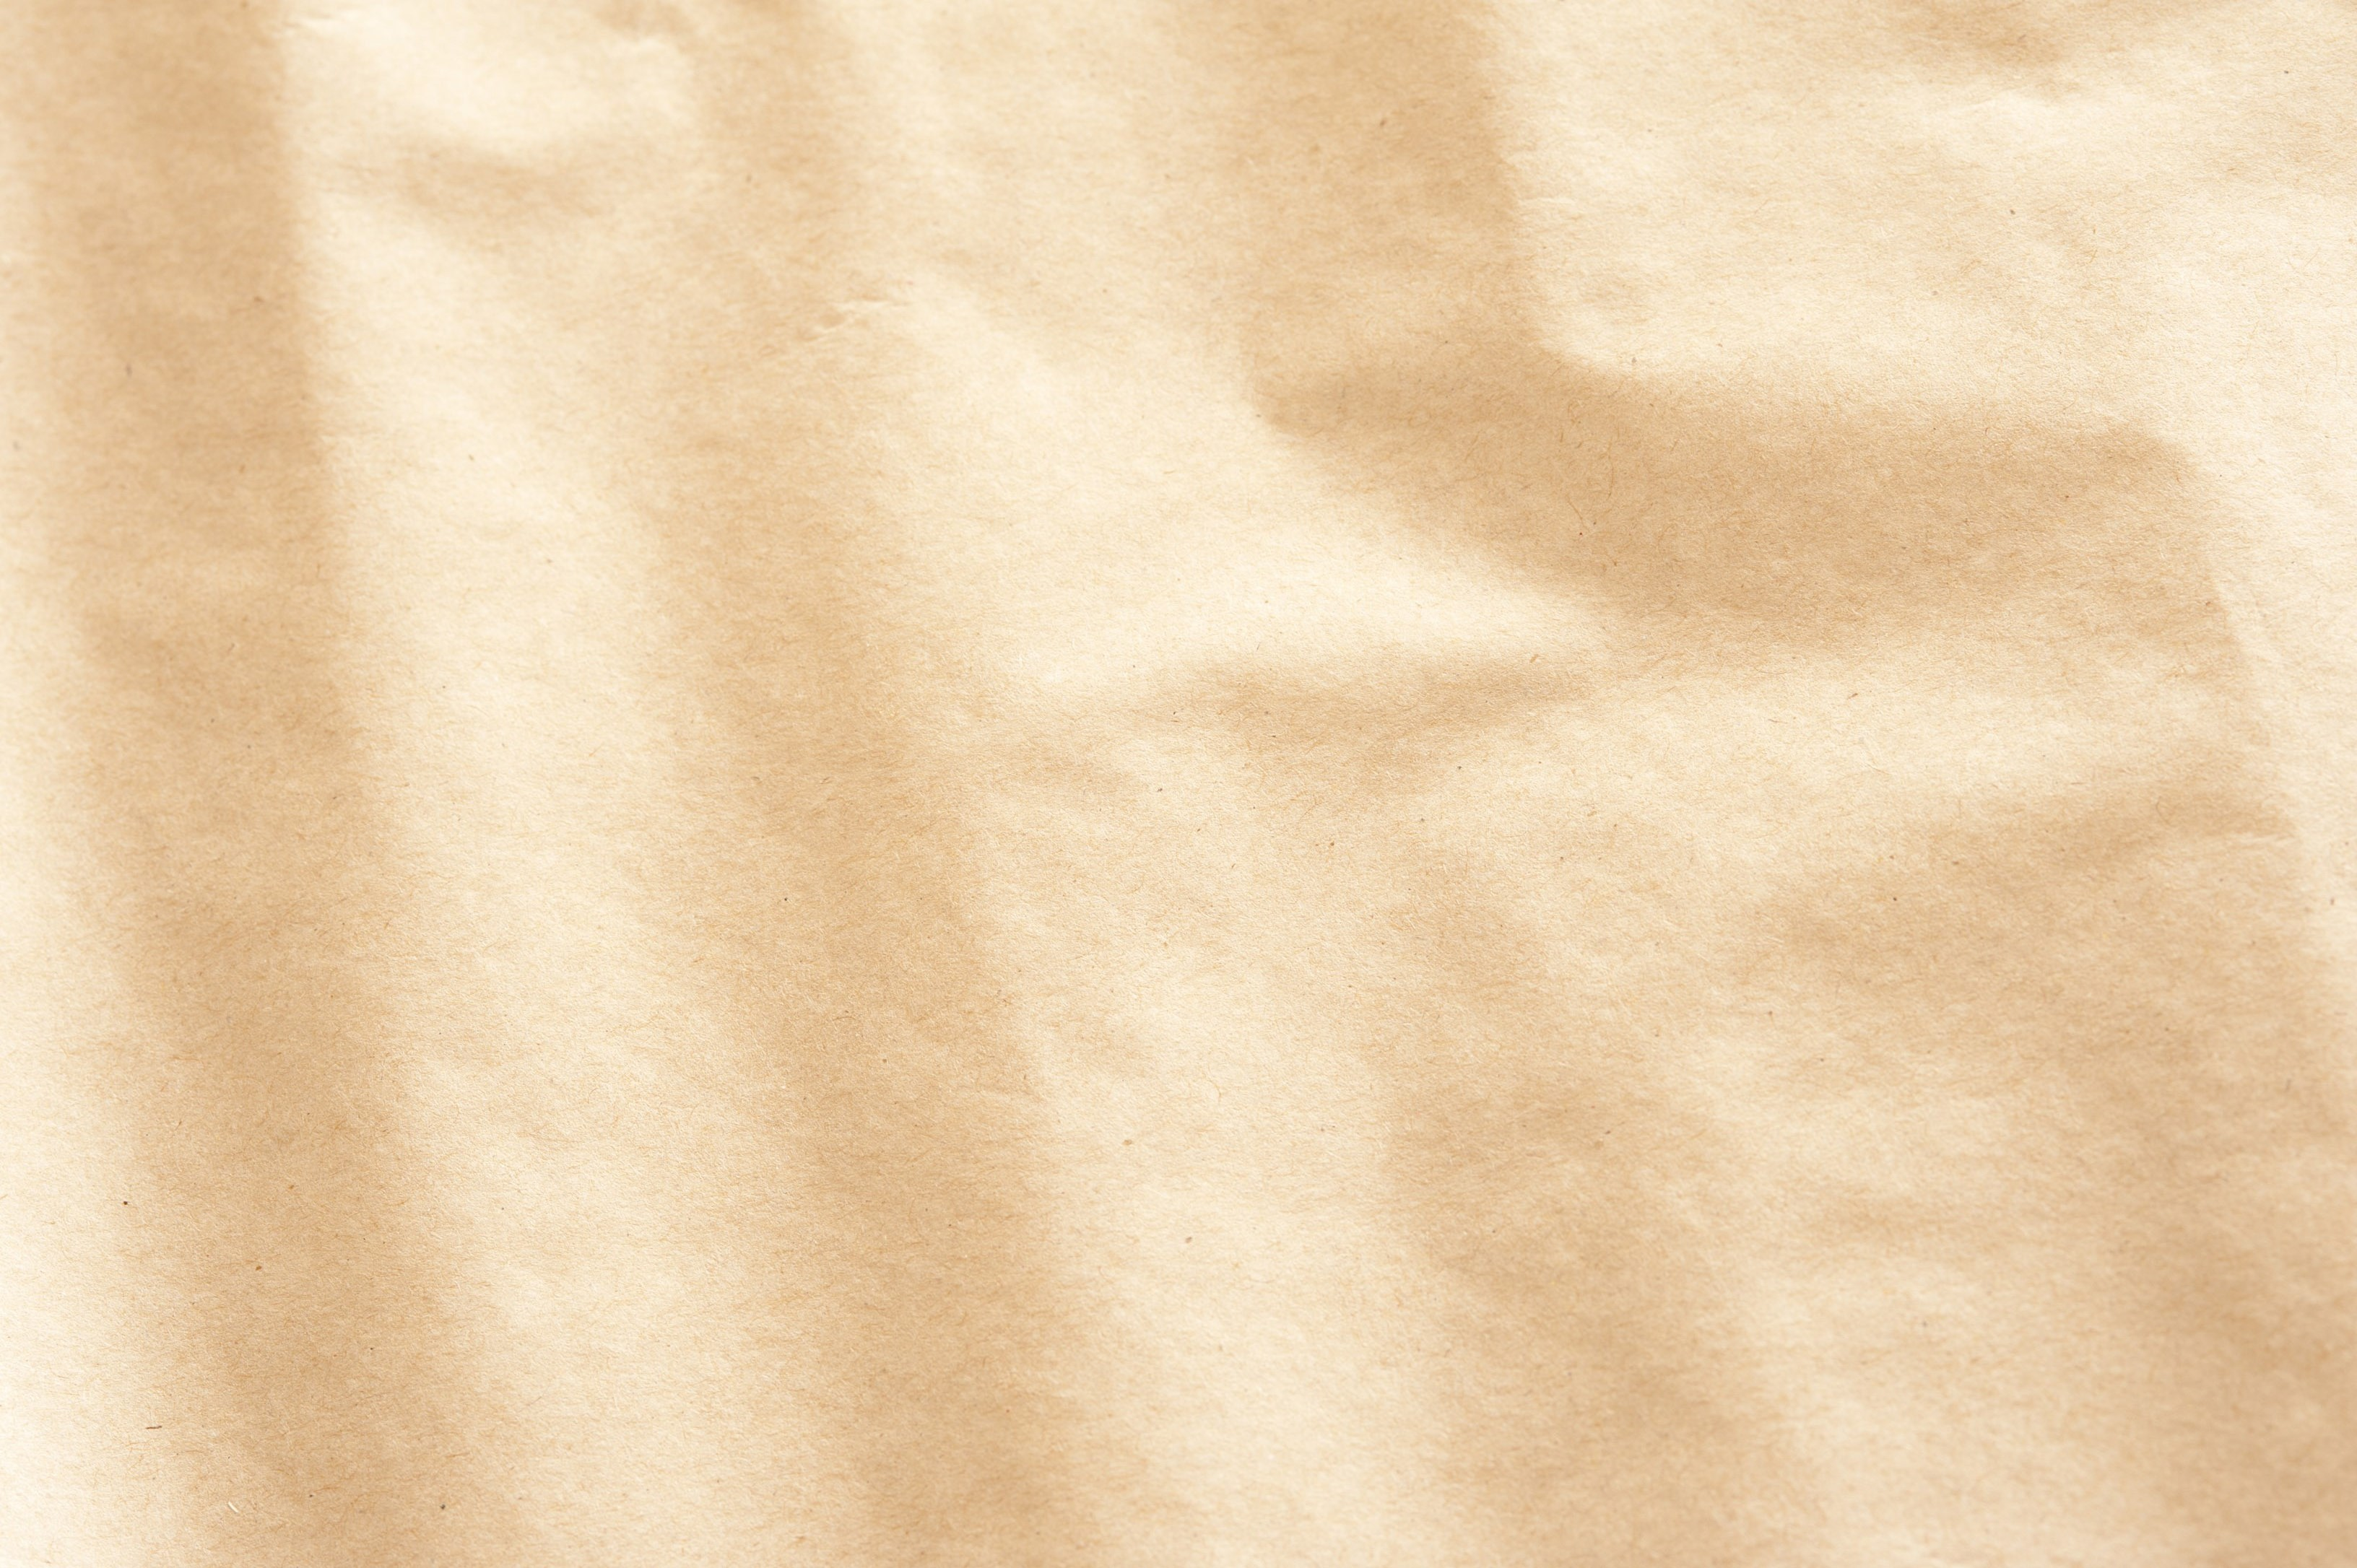 kraft paper backing | Free backgrounds and textures | Cr103.com